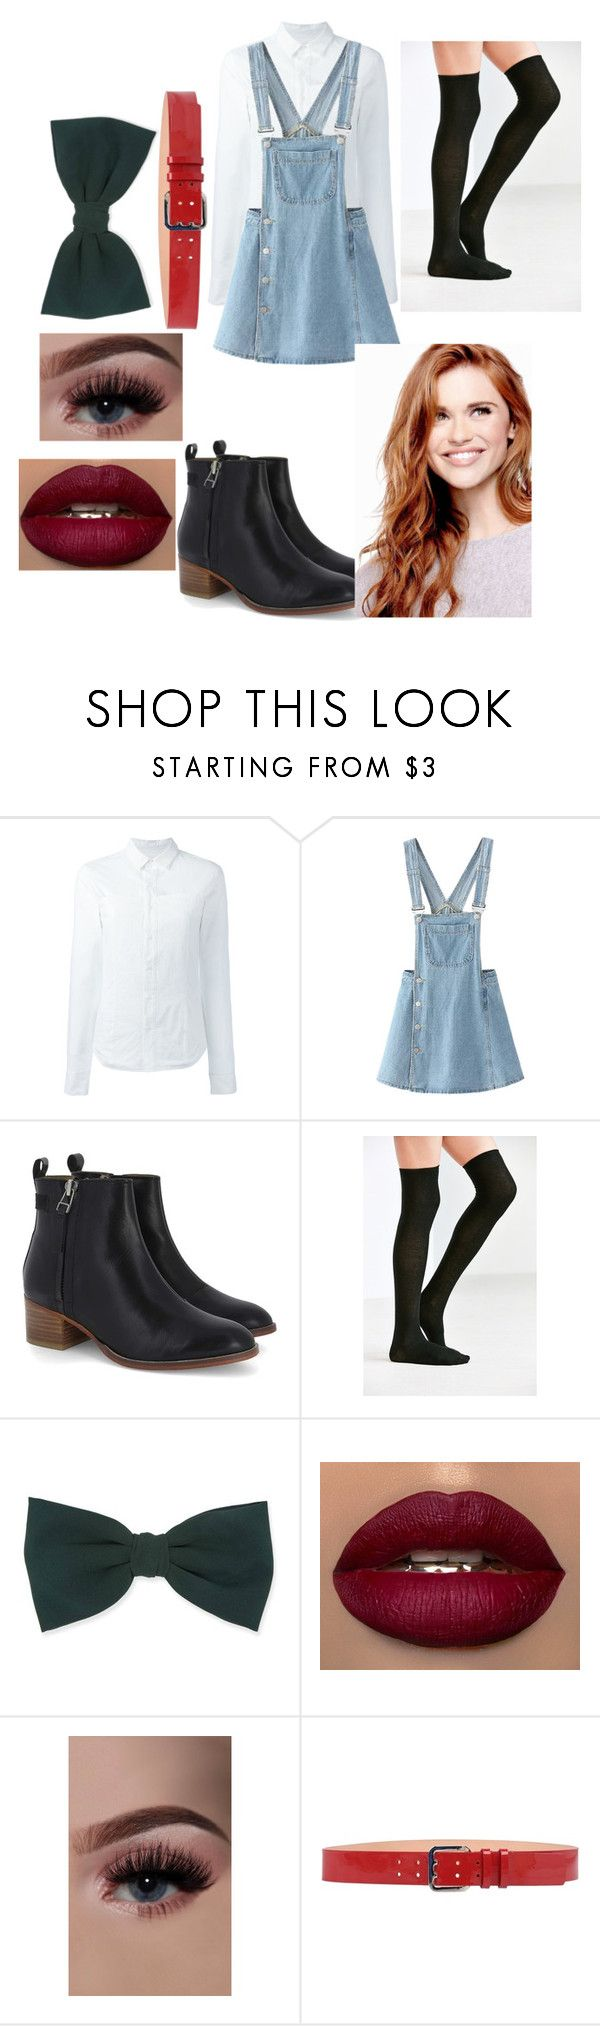 """""""Holland Roden style"""" by kayla-allaire on Polyvore featuring A.F. Vandevorst, WithChic, Urban Outfitters, Forever 21 and Dsquared2"""